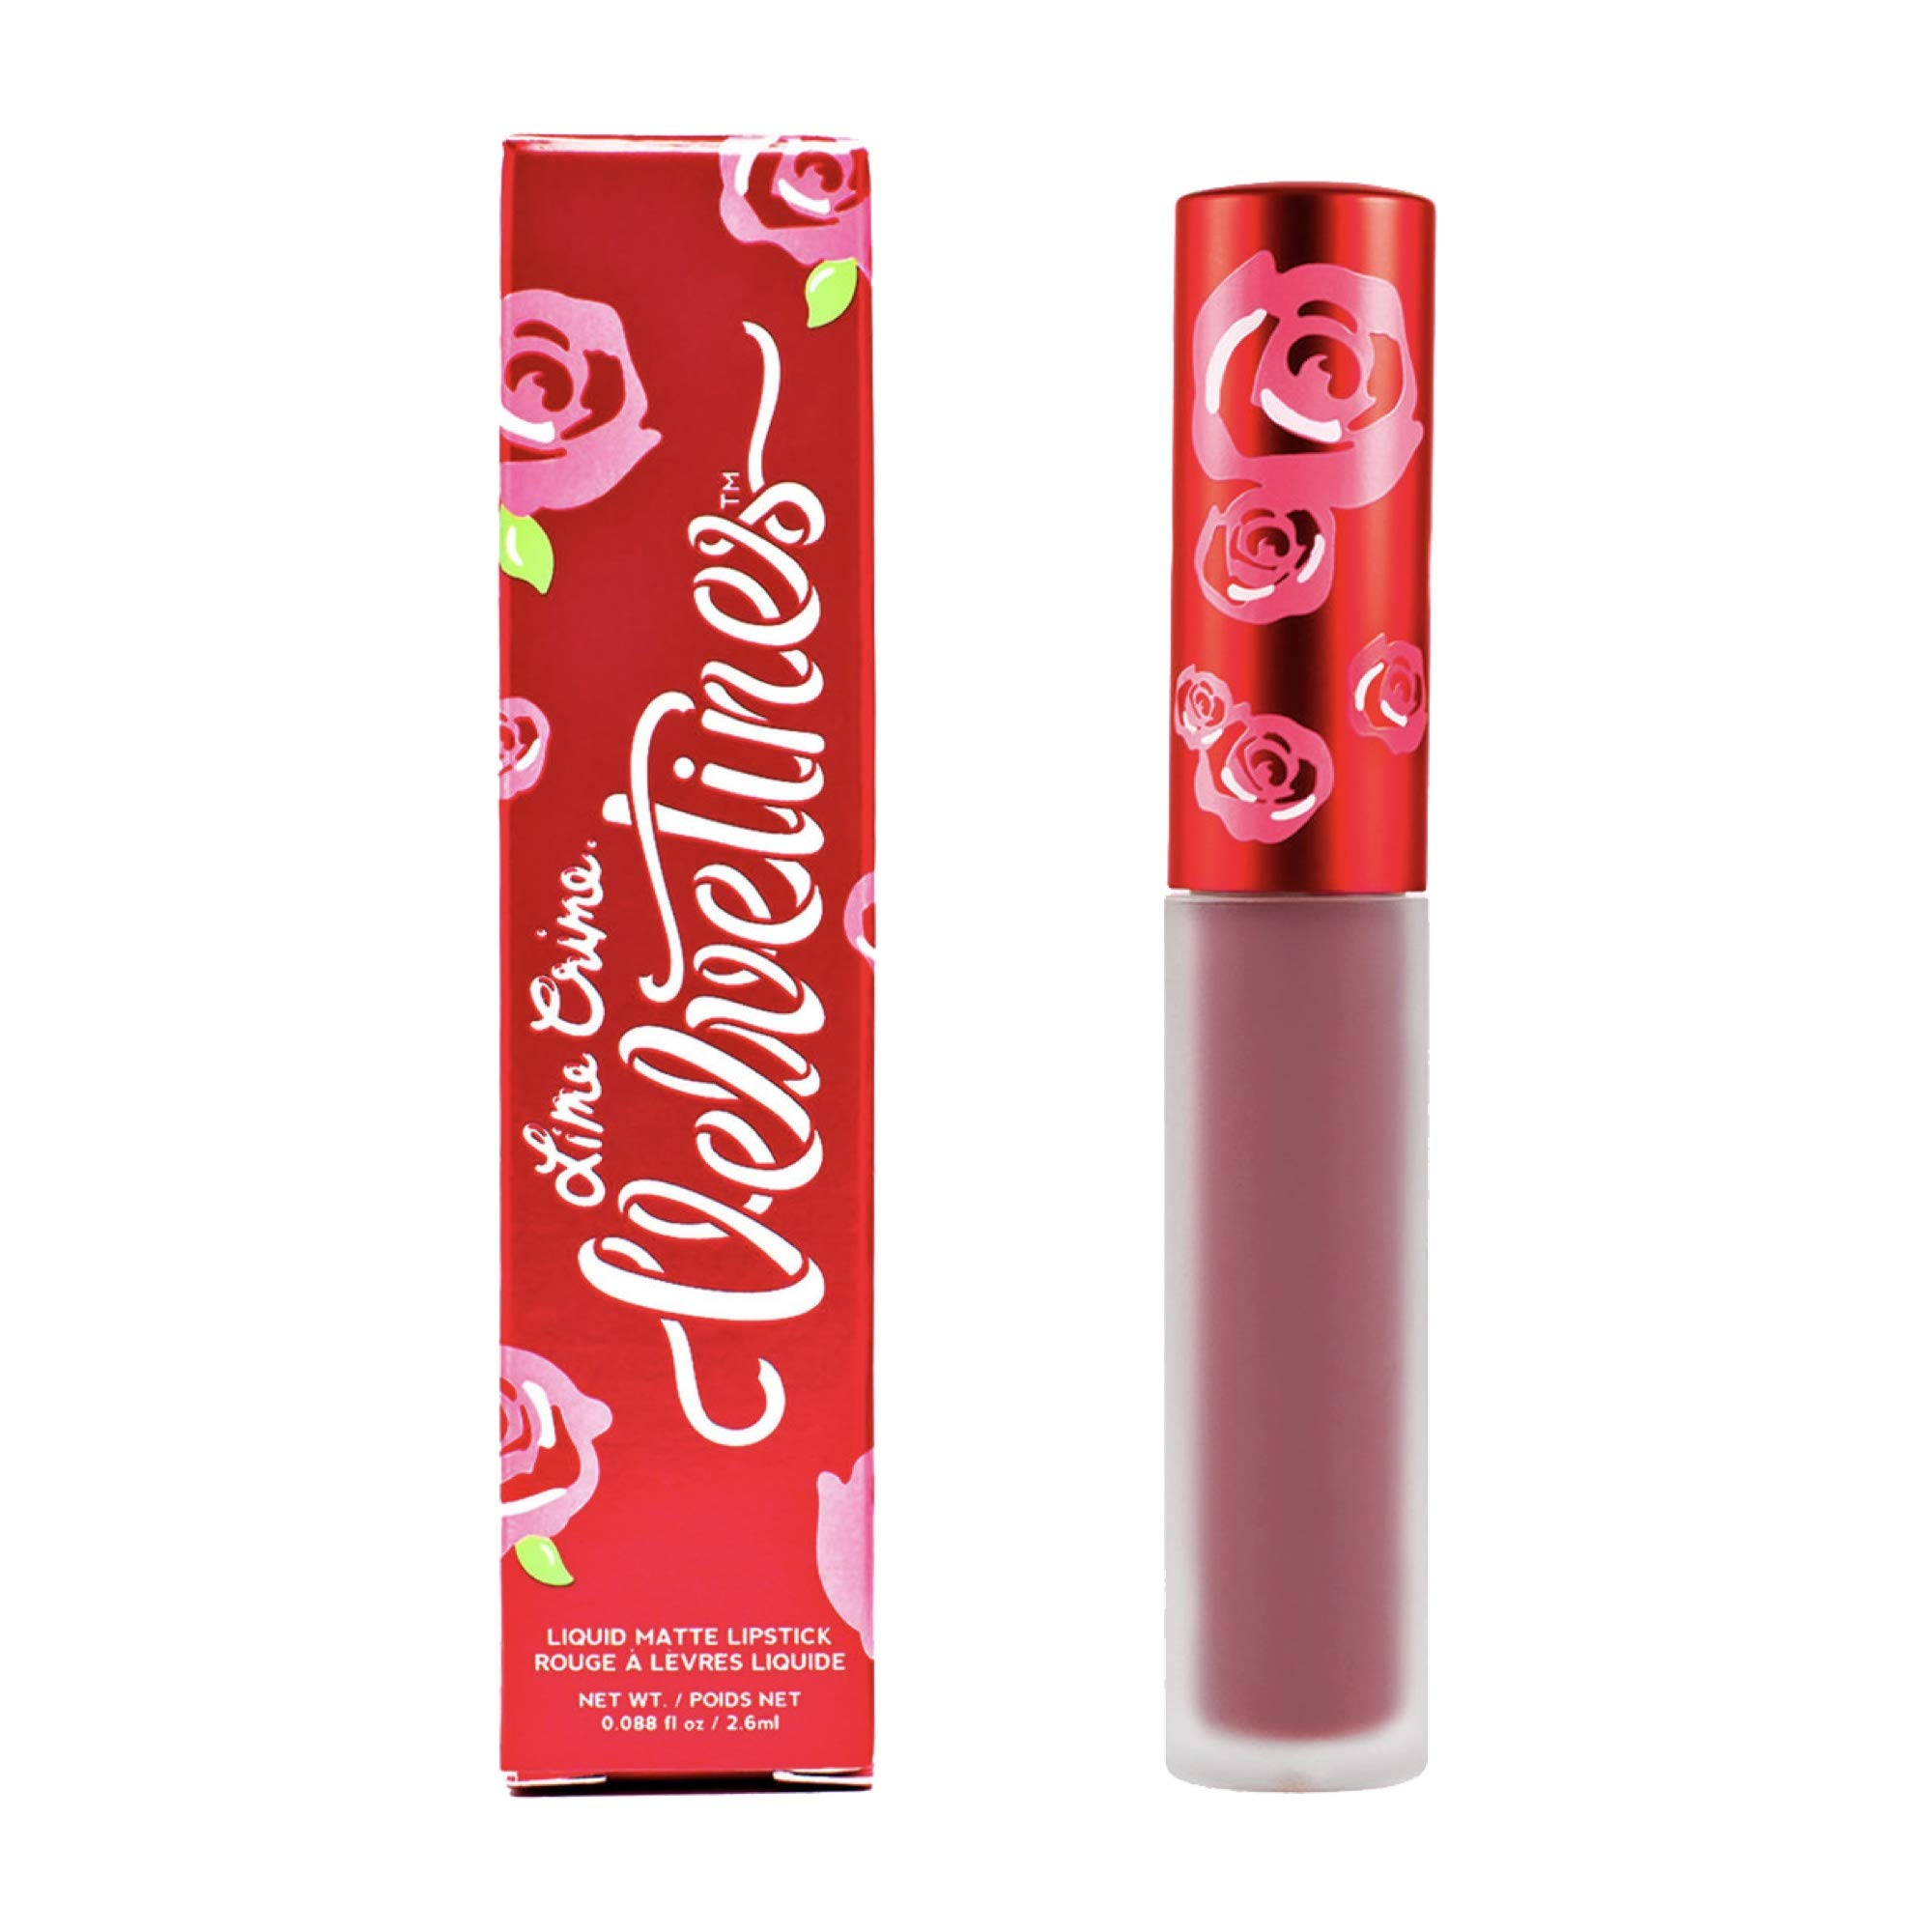 Lime Crime Velvetines Liquid Matte Lipstick, Sasha - Toasted Rose - French Vanilla Scent - Long-Lasting Velvety Matte Lipstick - Won't Bleed or Transfer - Vegan